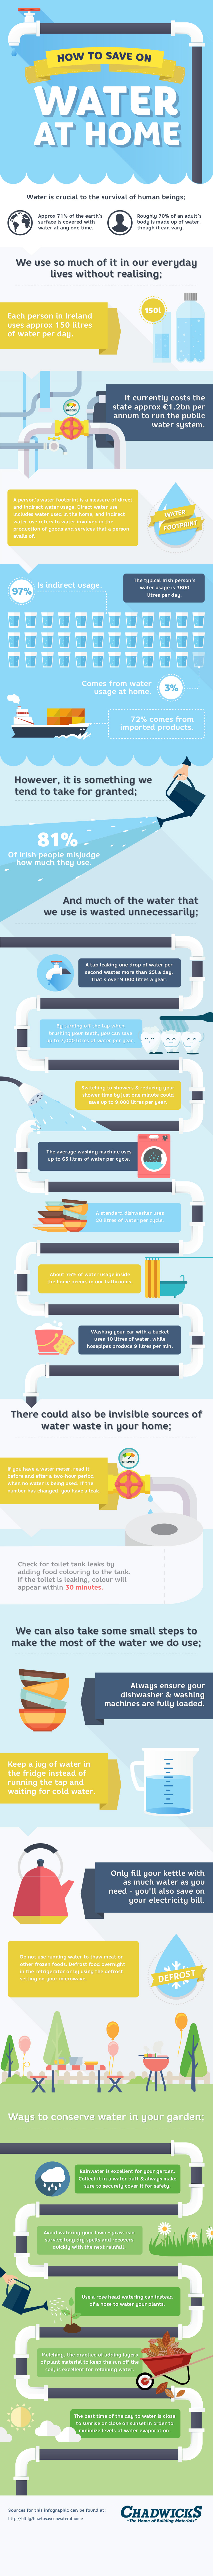 Water, water everywhere so lets all………..start saving! With the issue of water charges being the thorn in everybody's side at the moment, we thought now might be the perfect time to lend a helping hand with some water conservation ideas. Our latest Infographic will guide you on How To Save On Water At Home. Save on water and save on costs.